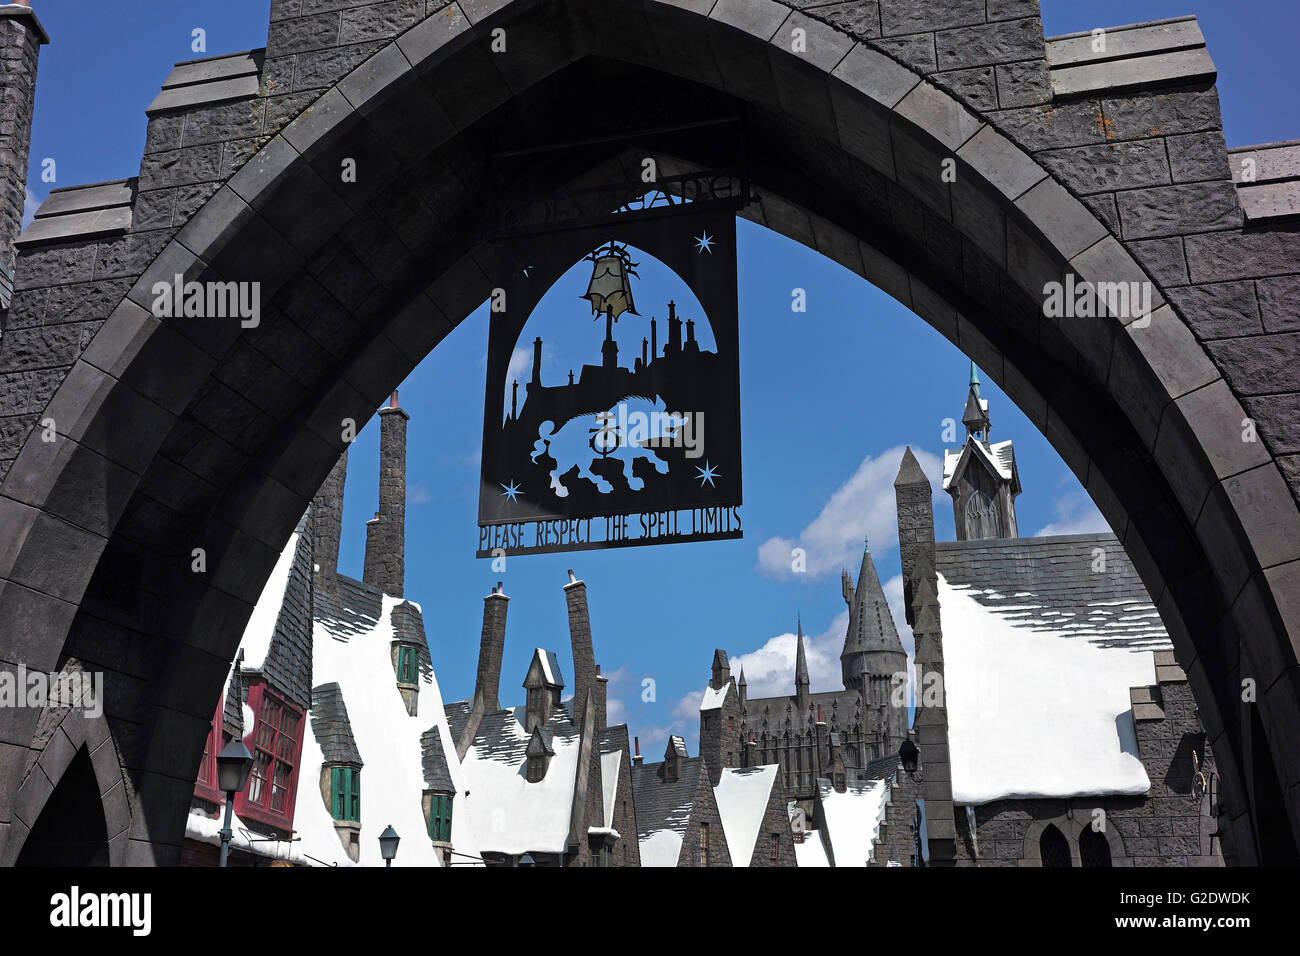 Entrance to Harry Potter World, Universal Studios California Stock Photo